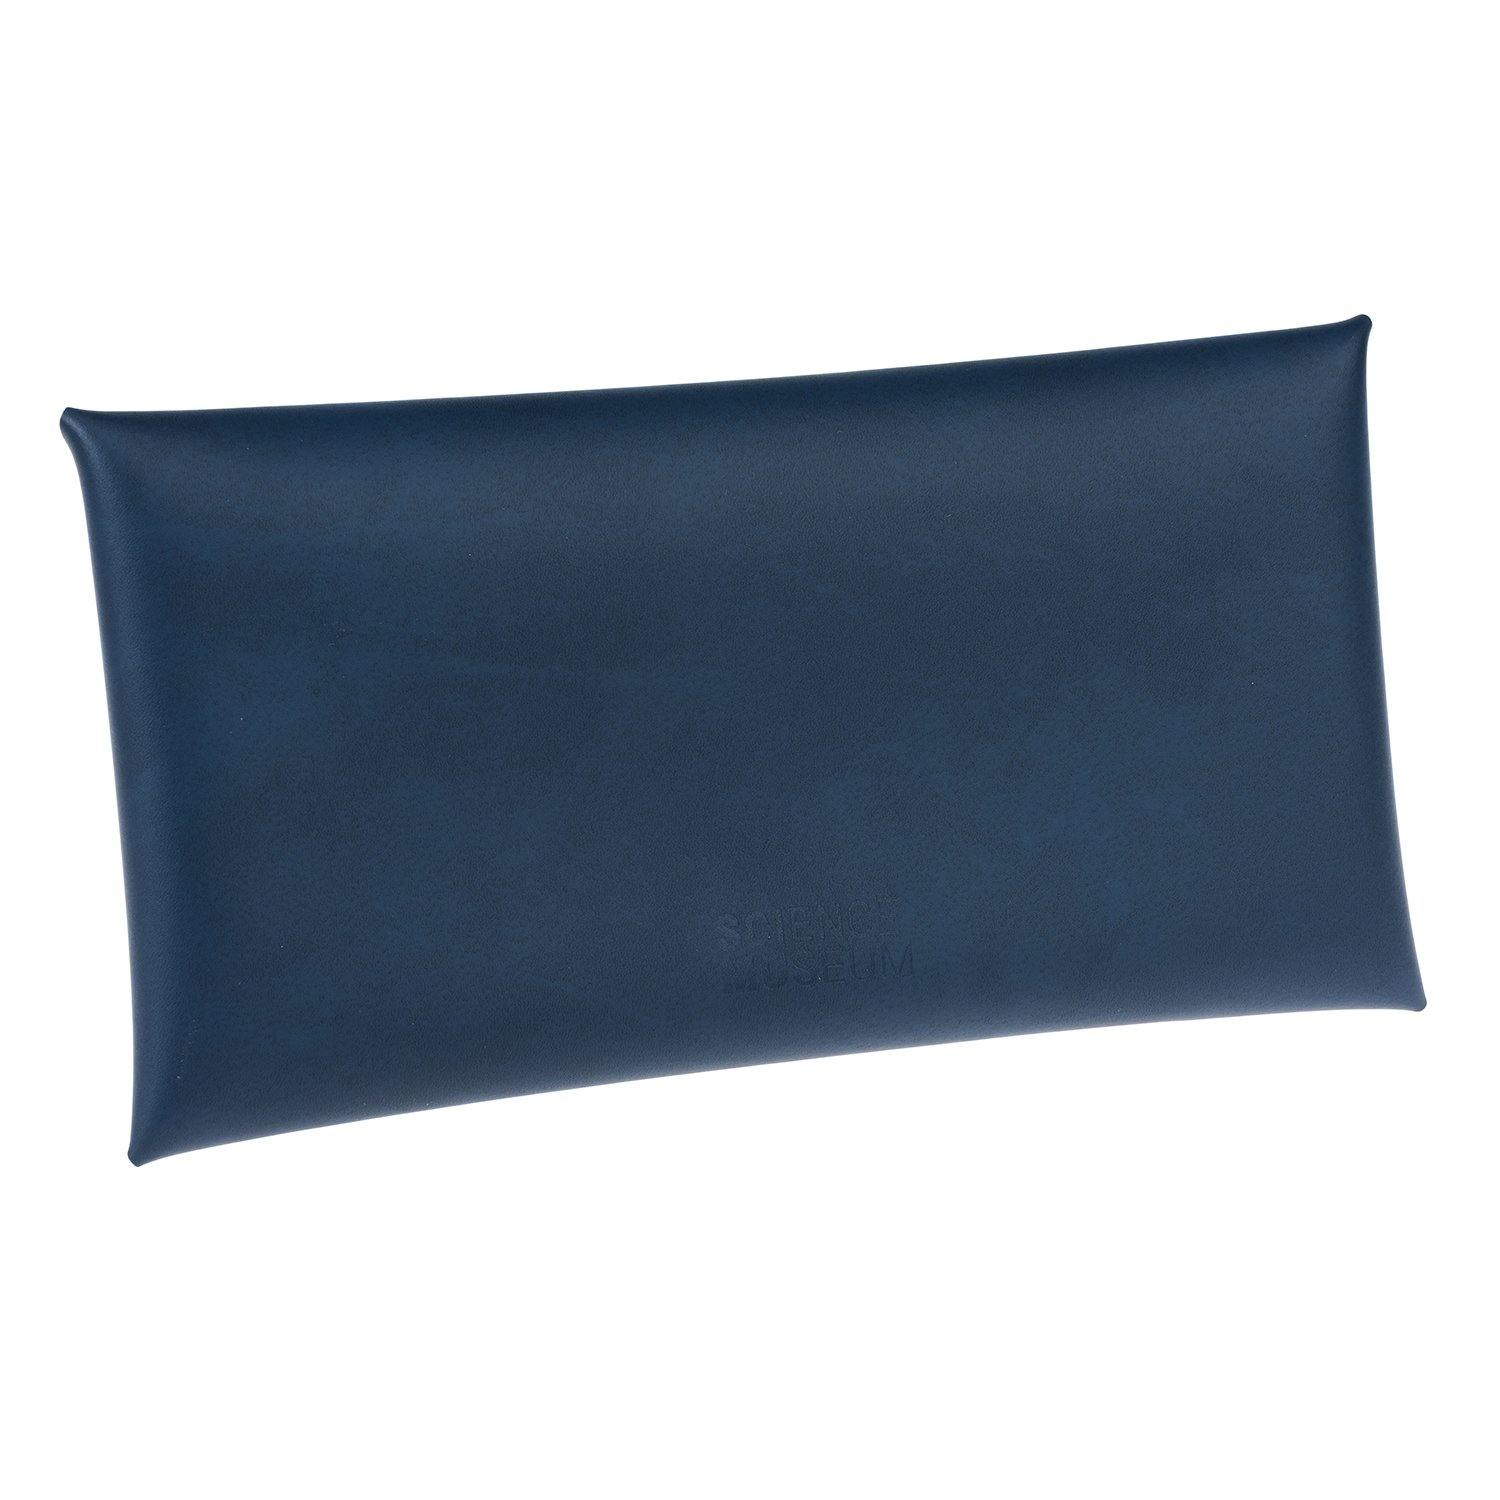 Comisario X Science Museum Leather Pouch Navy3